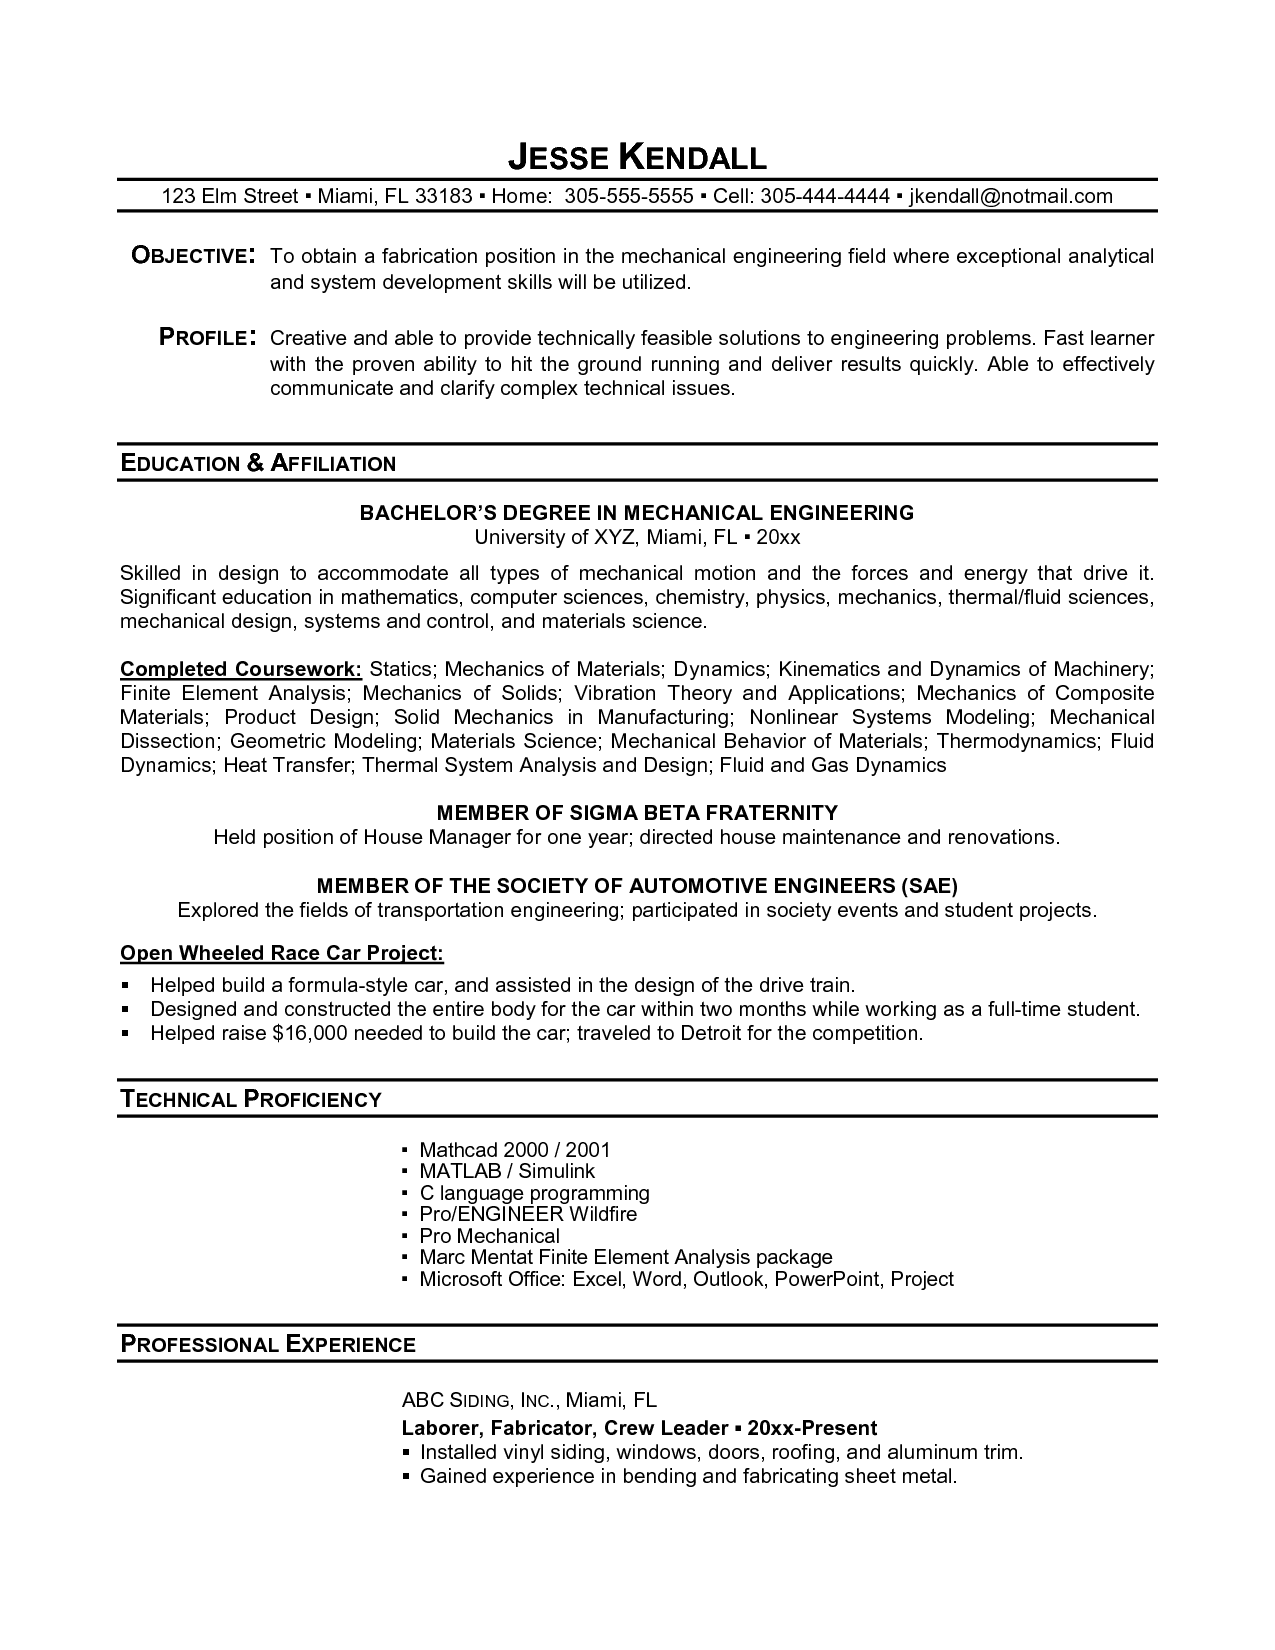 resume examples student examples collge high school resume samples for students examples student resume sample - How To Write A Resume For Students In High School